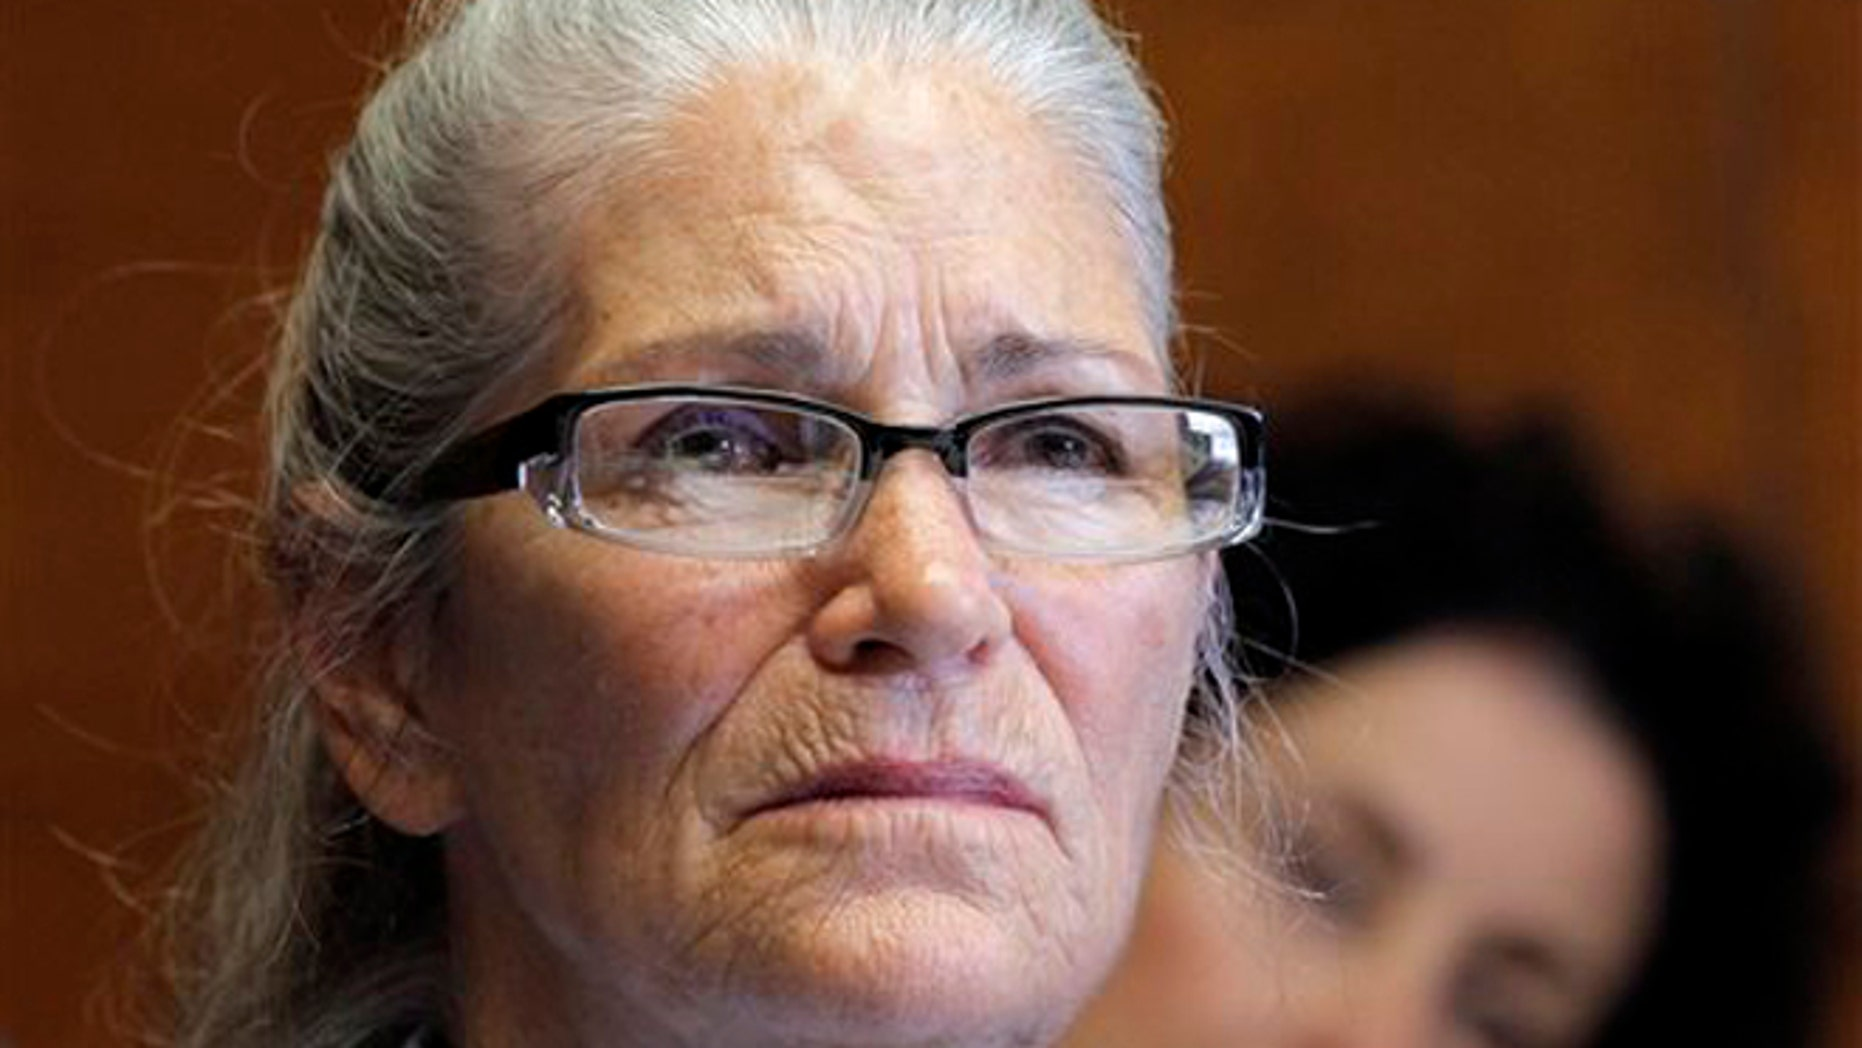 In this June 5, 2013, file photo, Leslie Van Houten appears during her parole hearing at the California Institution for Women in Chino, Calif.